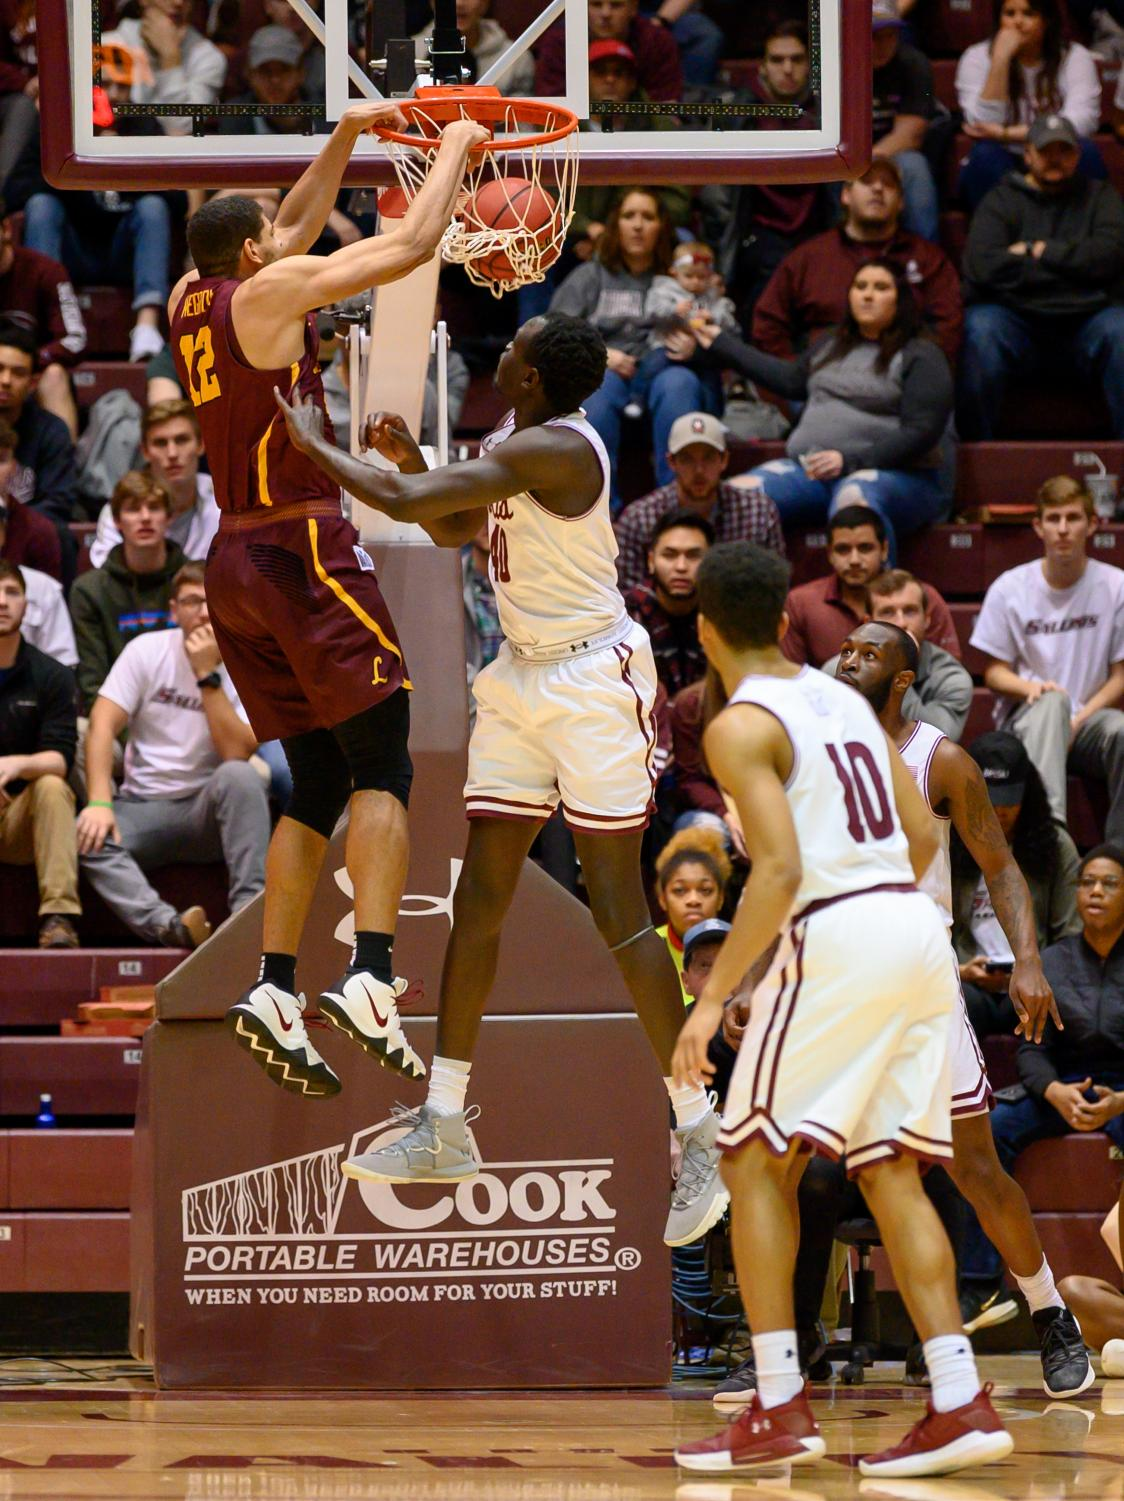 Loyola+Ramblers+forward+Christian+Negron+dunks+the+ball+on+Sunday%2C+Feb.+24%2C+2019%2C+during+a+matchup+between+the+Southern+Illinois+Salukis+and+the+Loyola+Ramblers+at+SIU+Arena.